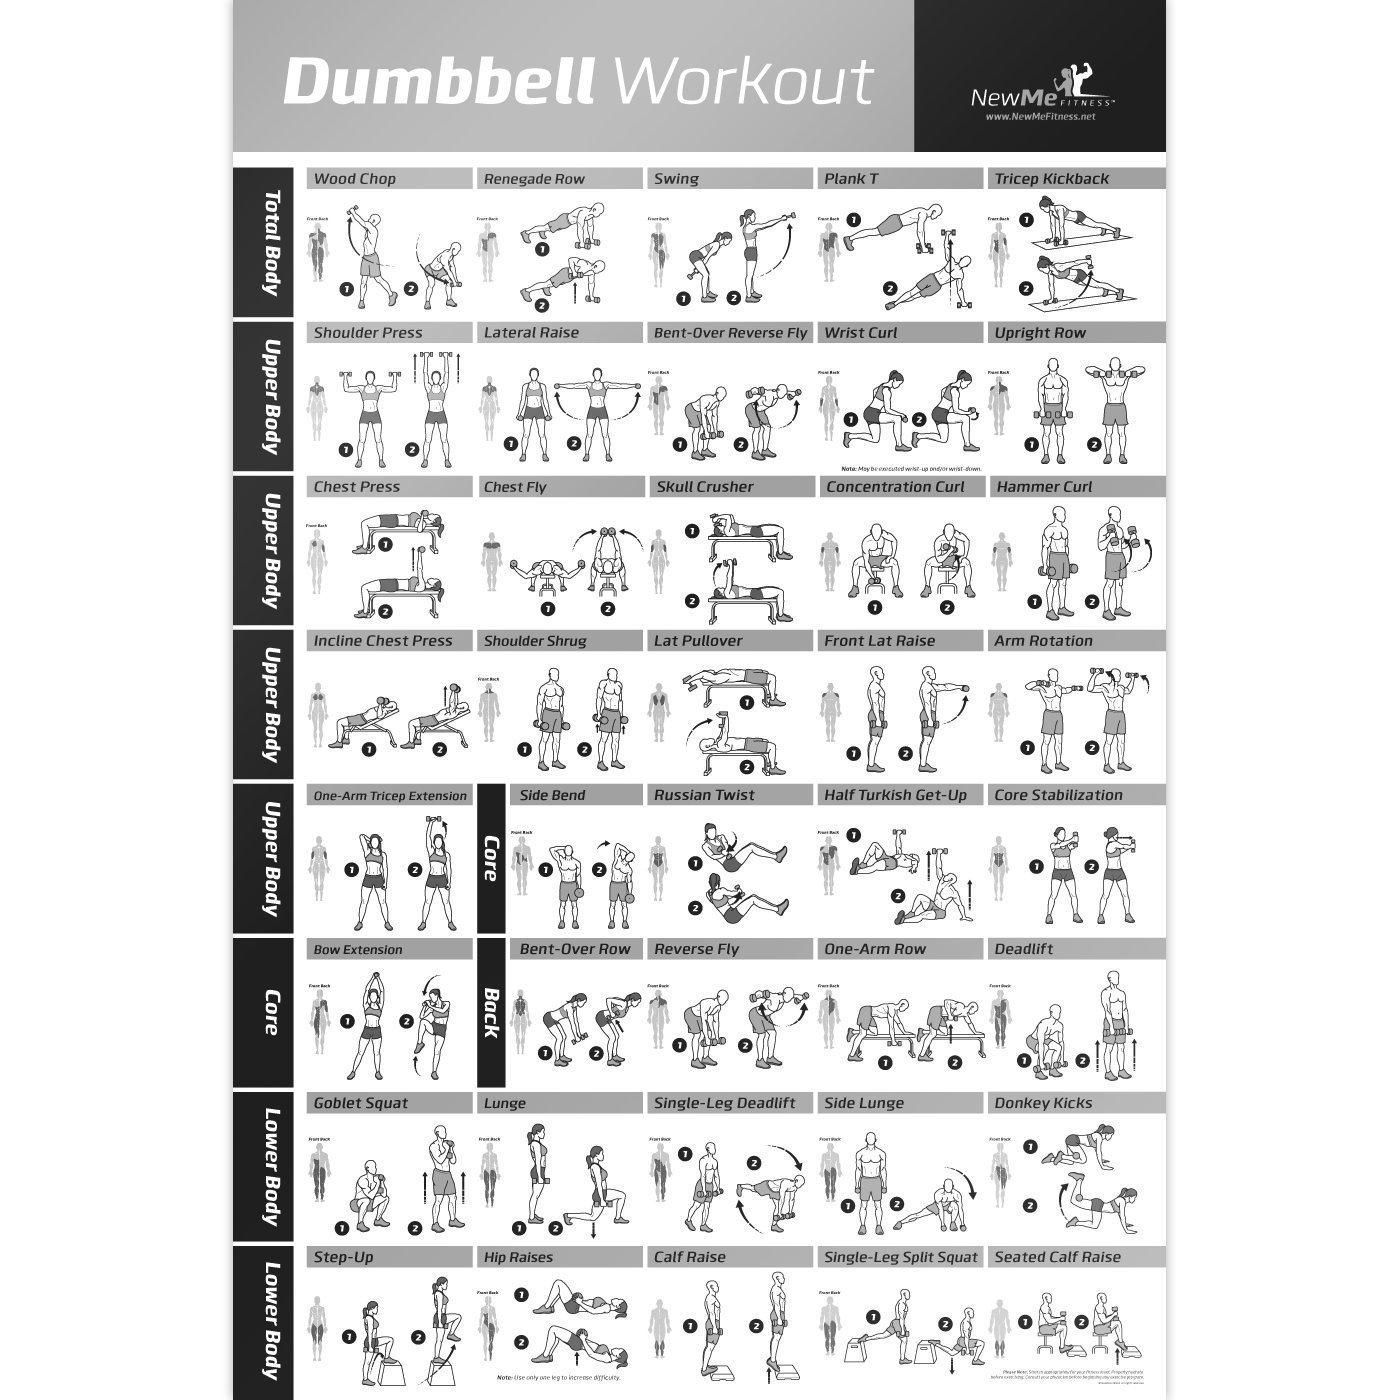 Free Weight Dumbbell Back Exercises: Printable Diagram Printable-dumbbell-exercises-diagrams-1